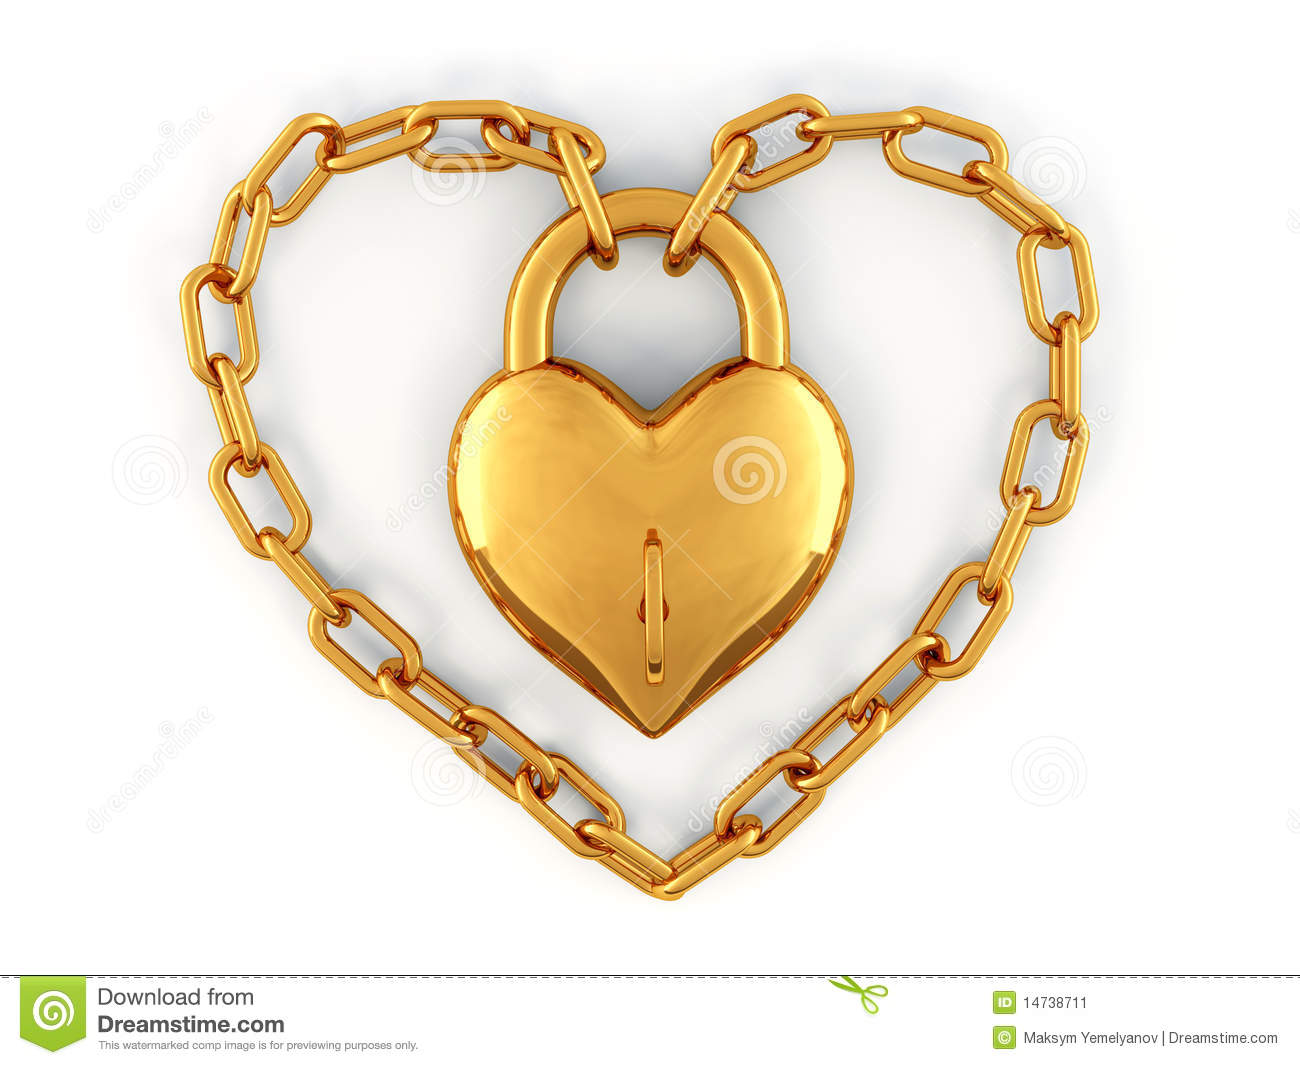 Chain With Lock As Heart Stock Image - Image: 14738711